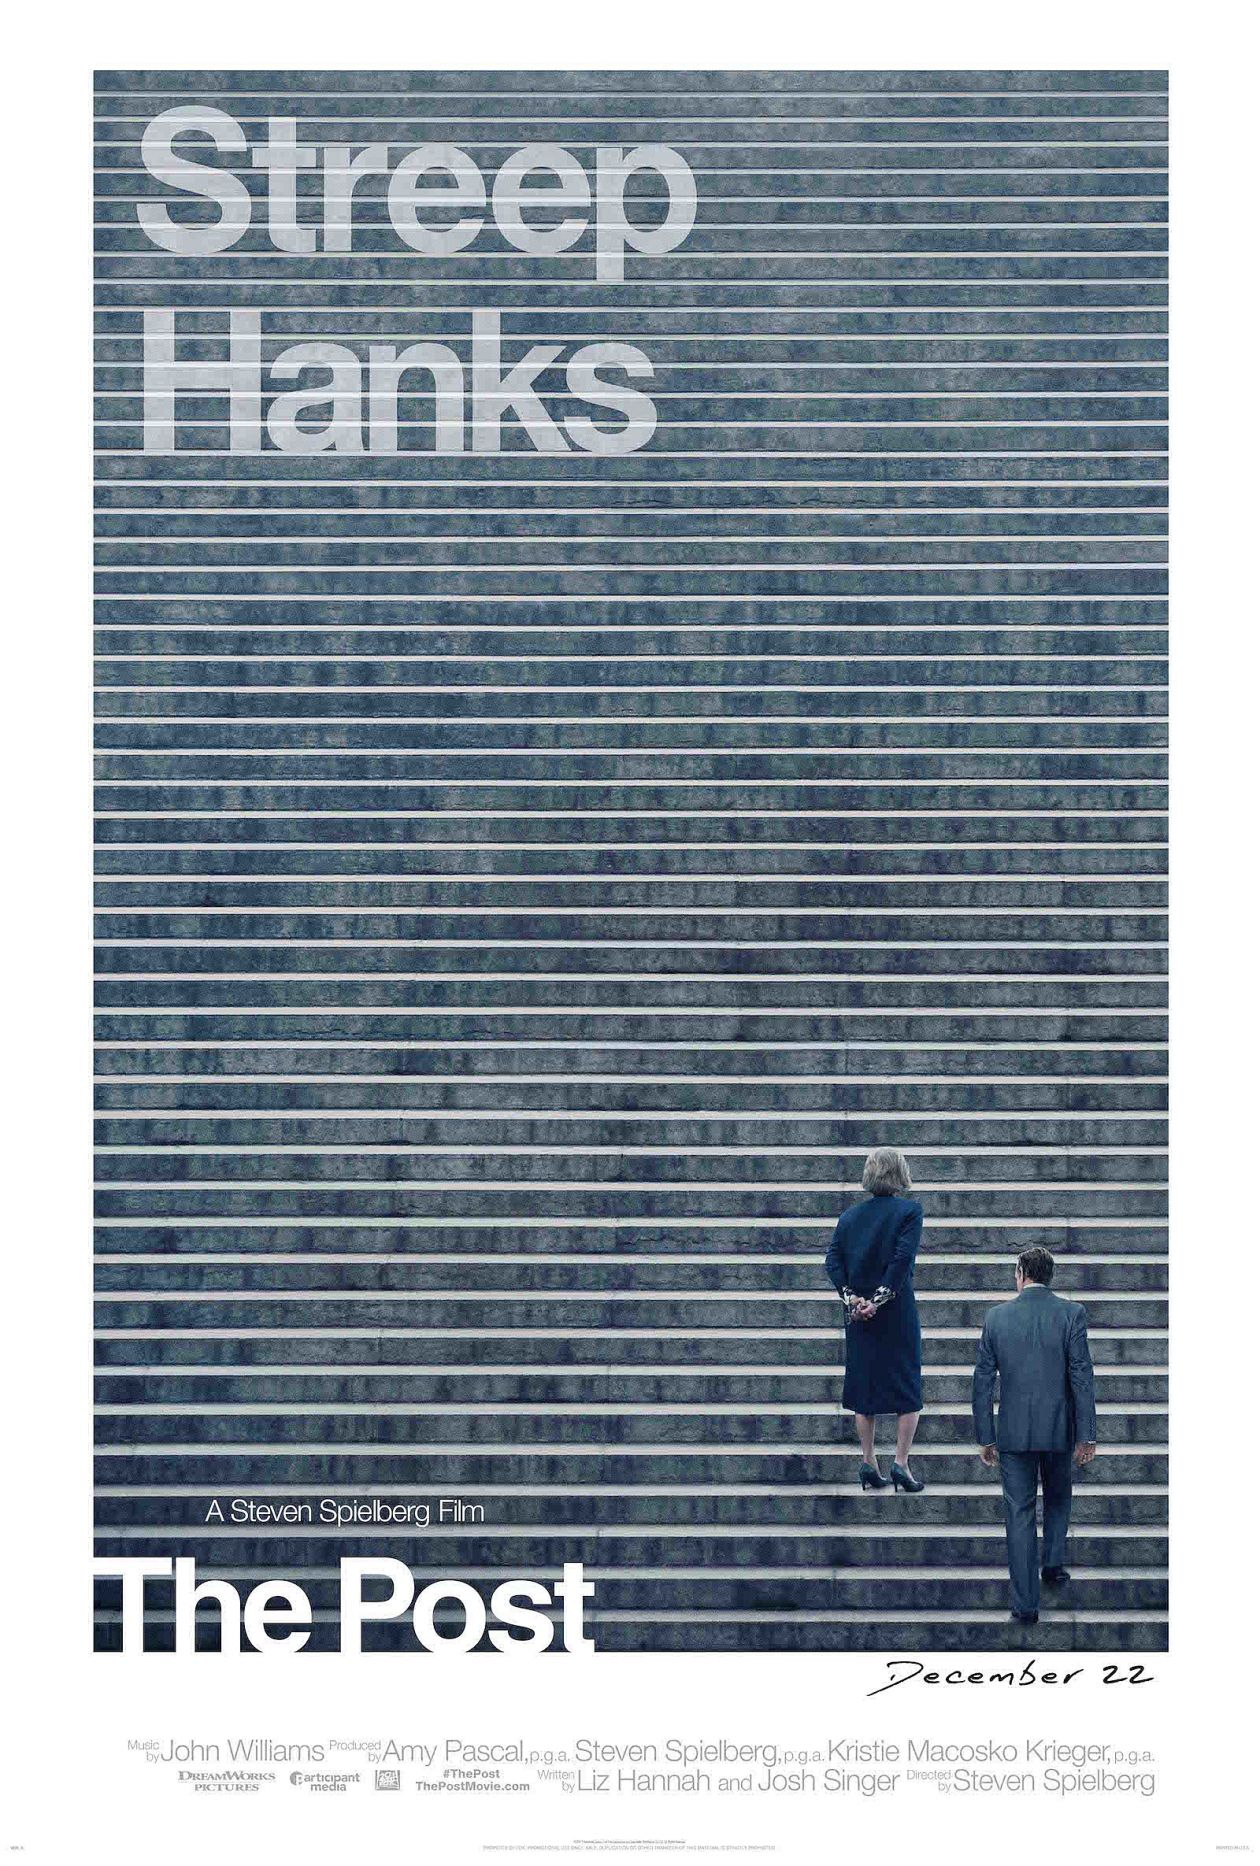 Meryl Streep actress | The Post / Steven Spielberg 2017 Movie Poster Affiche film